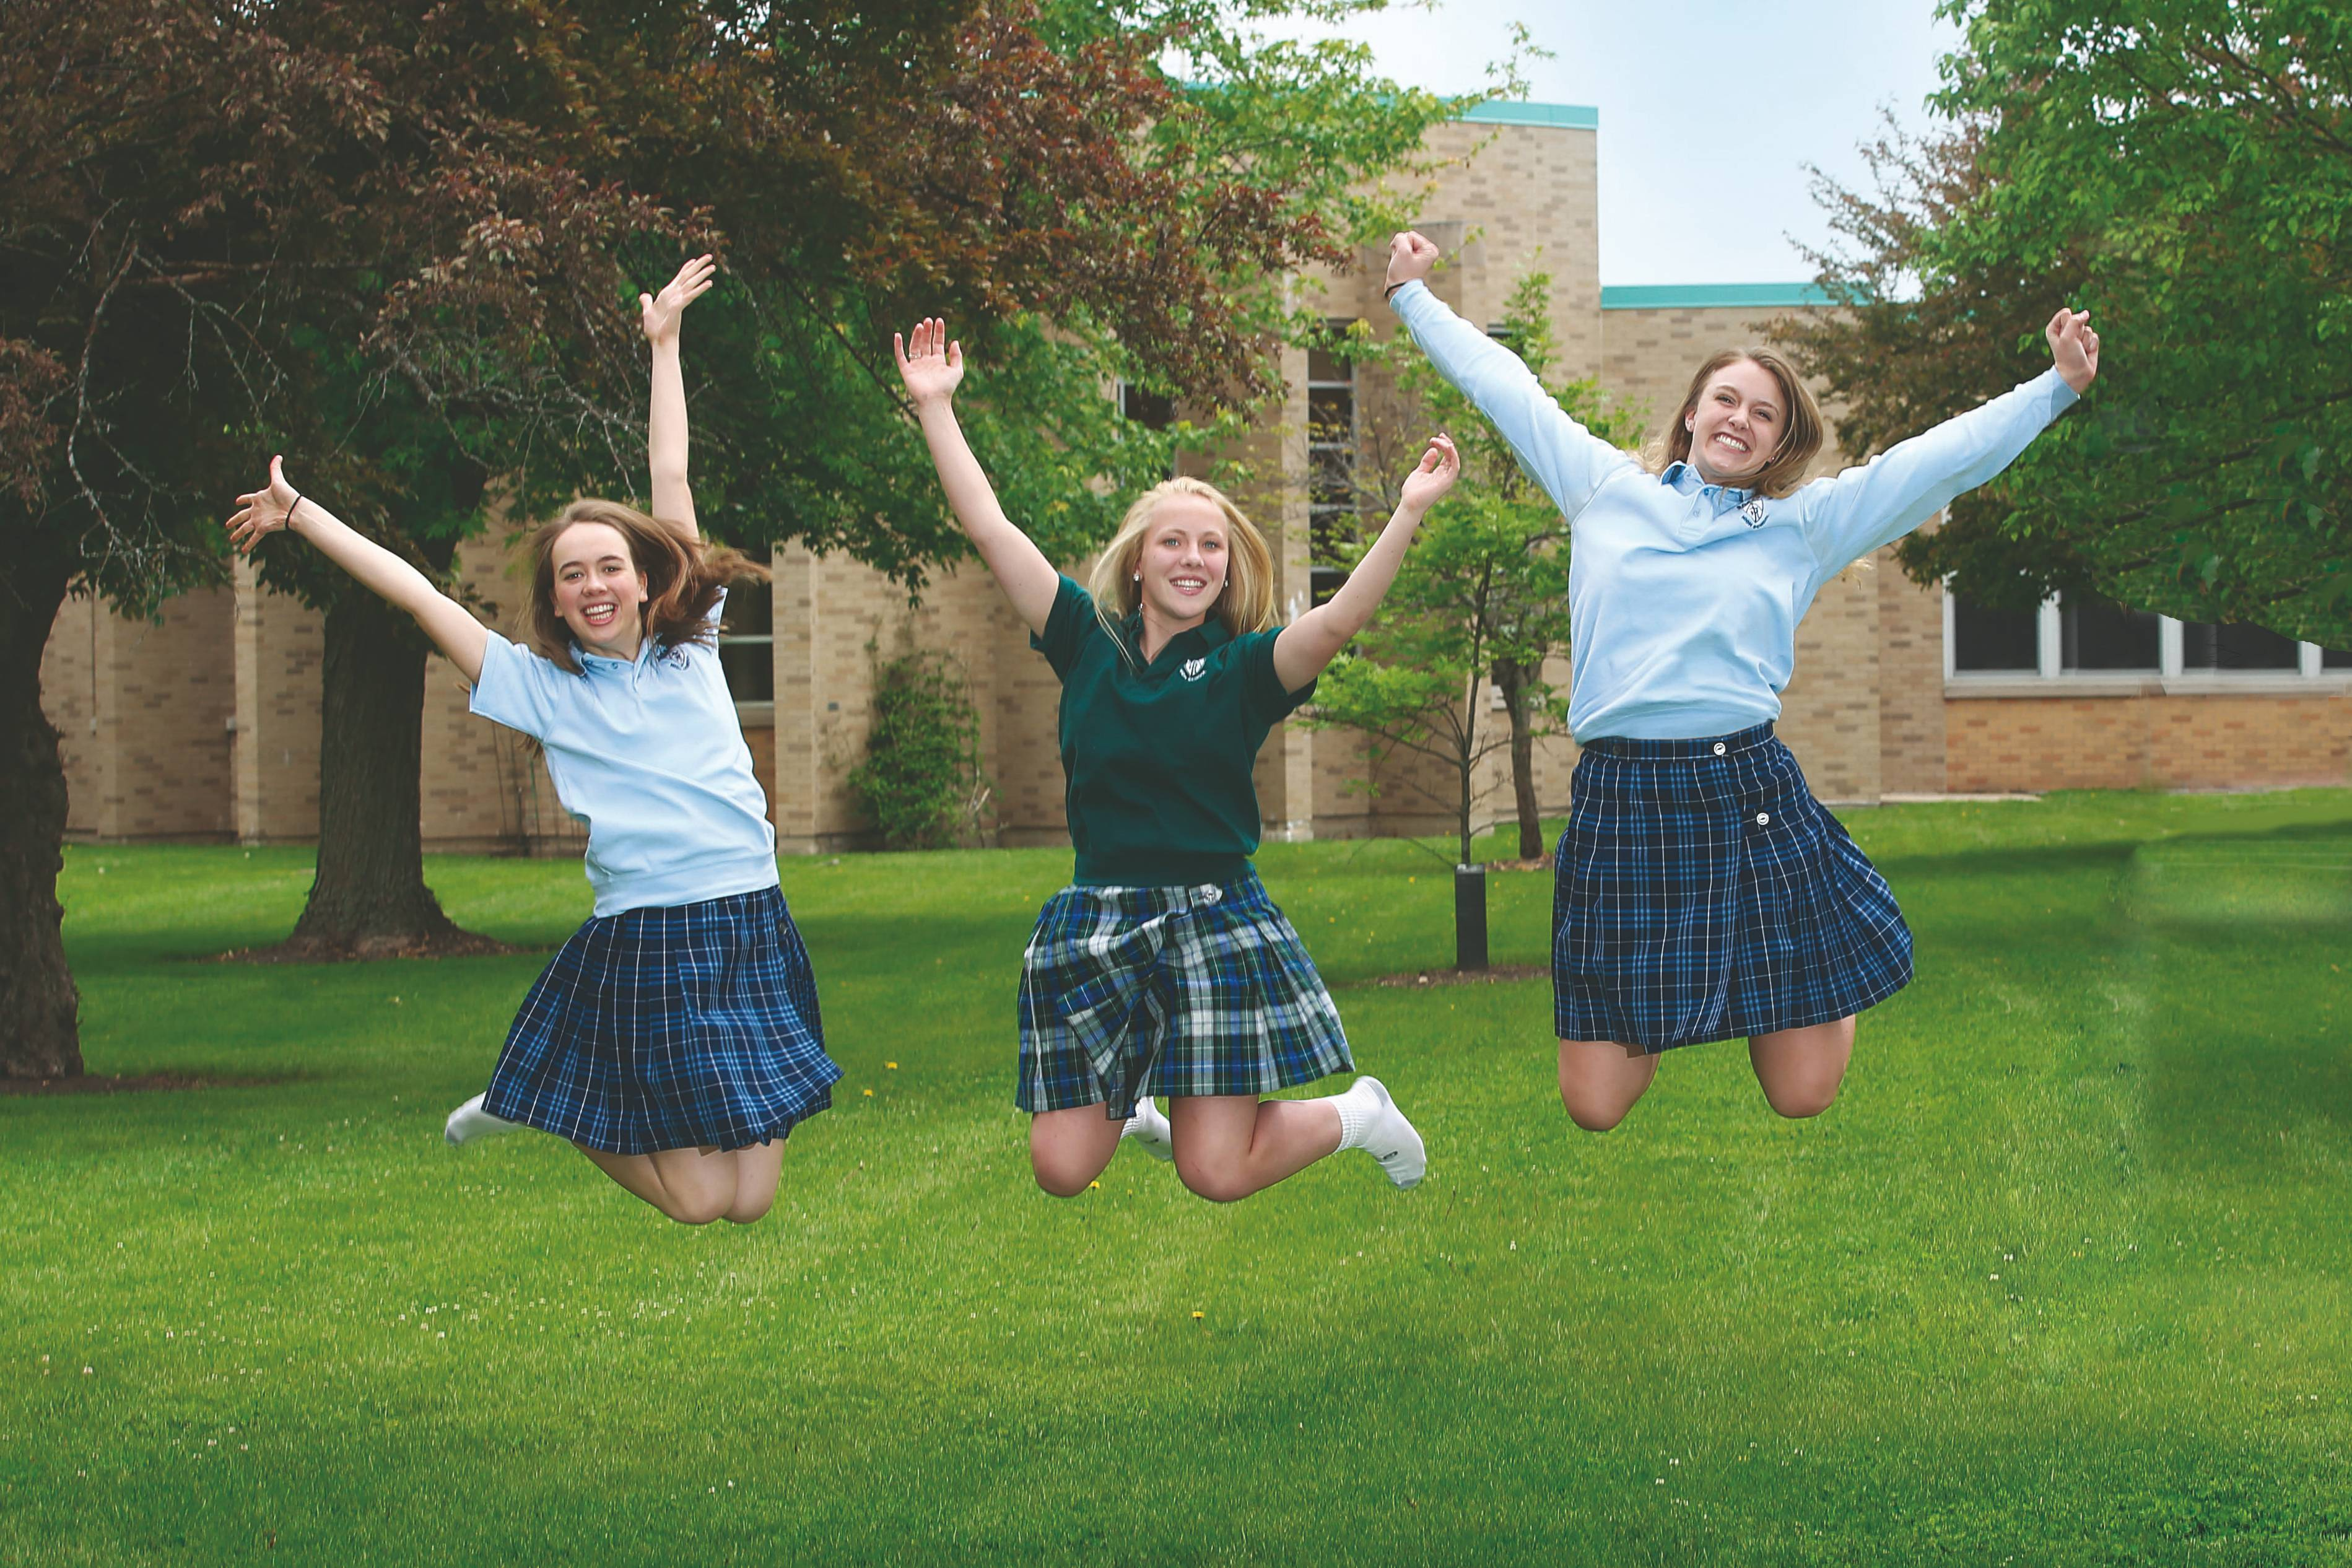 Rosary High School in Aurora is hosting an open house Sunday, Oct. 29, for parents and their fifth- to eighth-grade daughters.